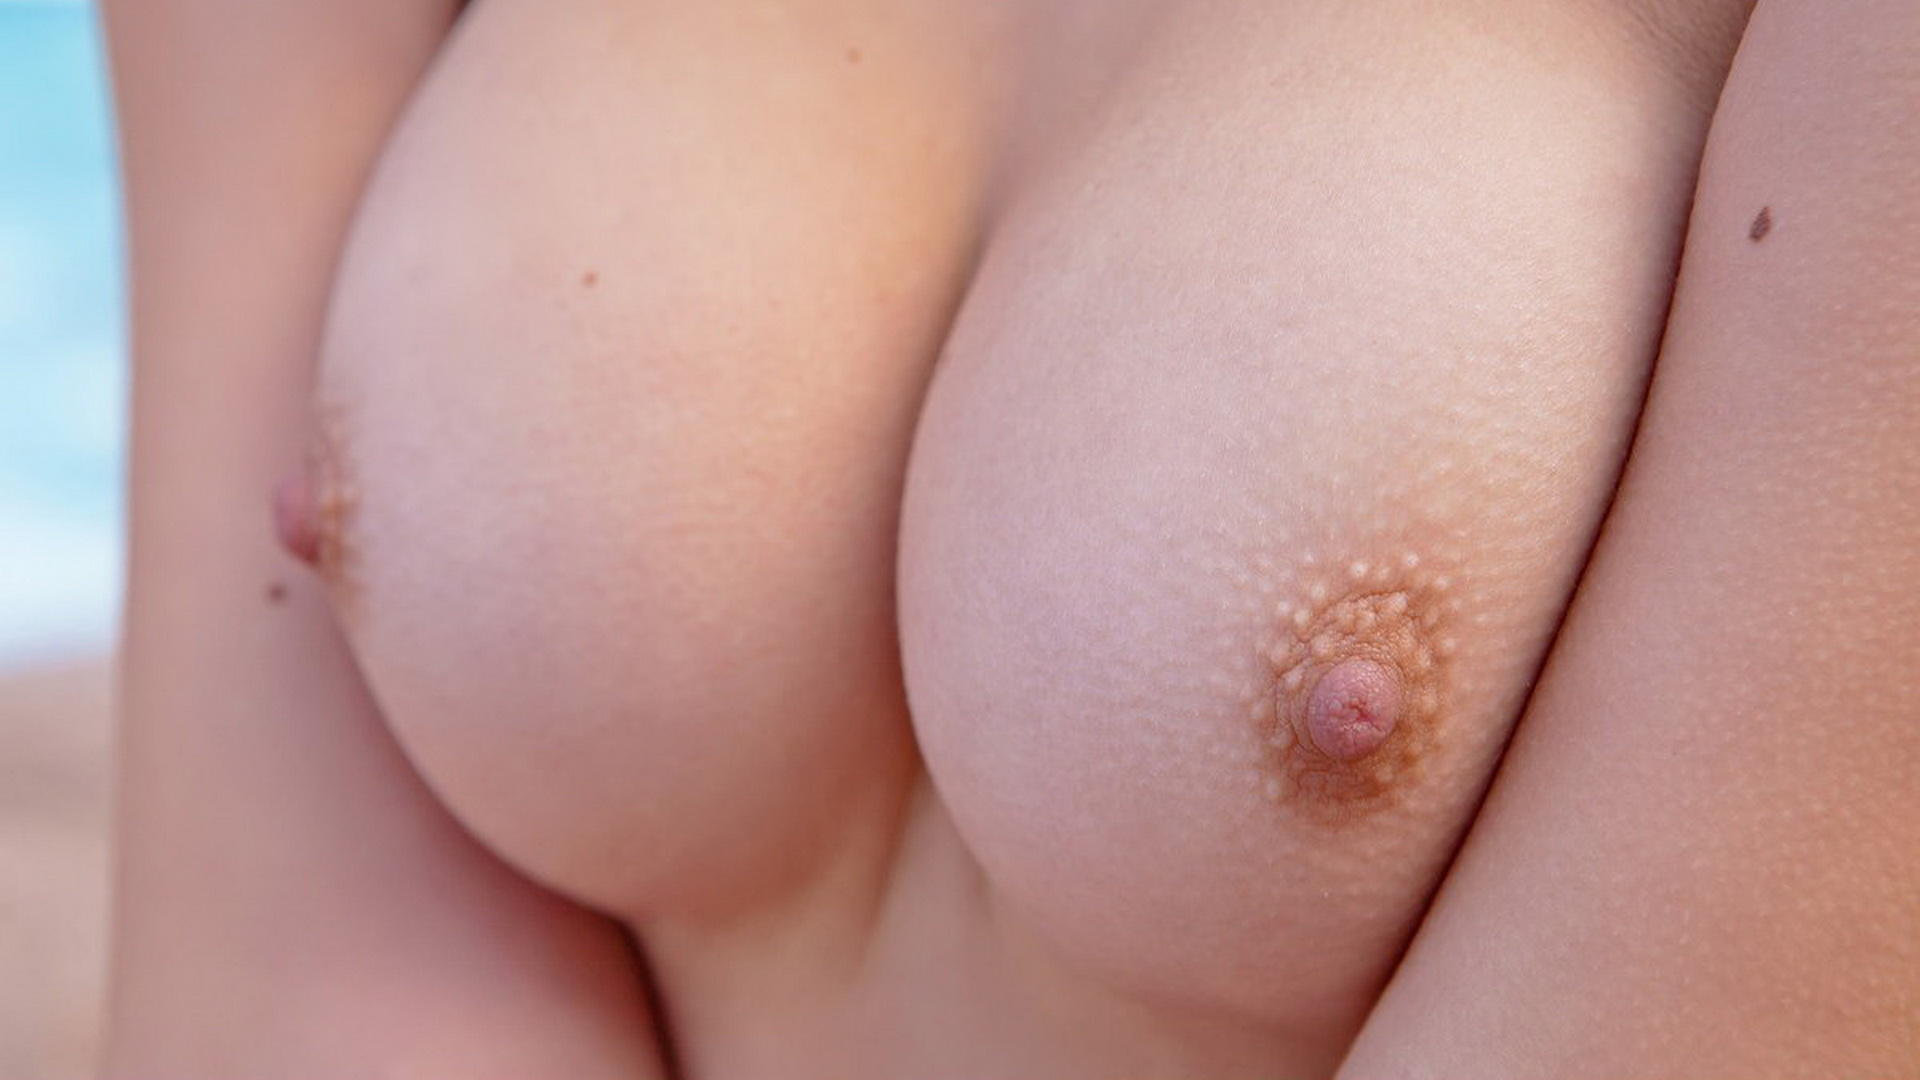 Download Photo 1920X1080, Niples, Tits, Sexy, Nipples -6126